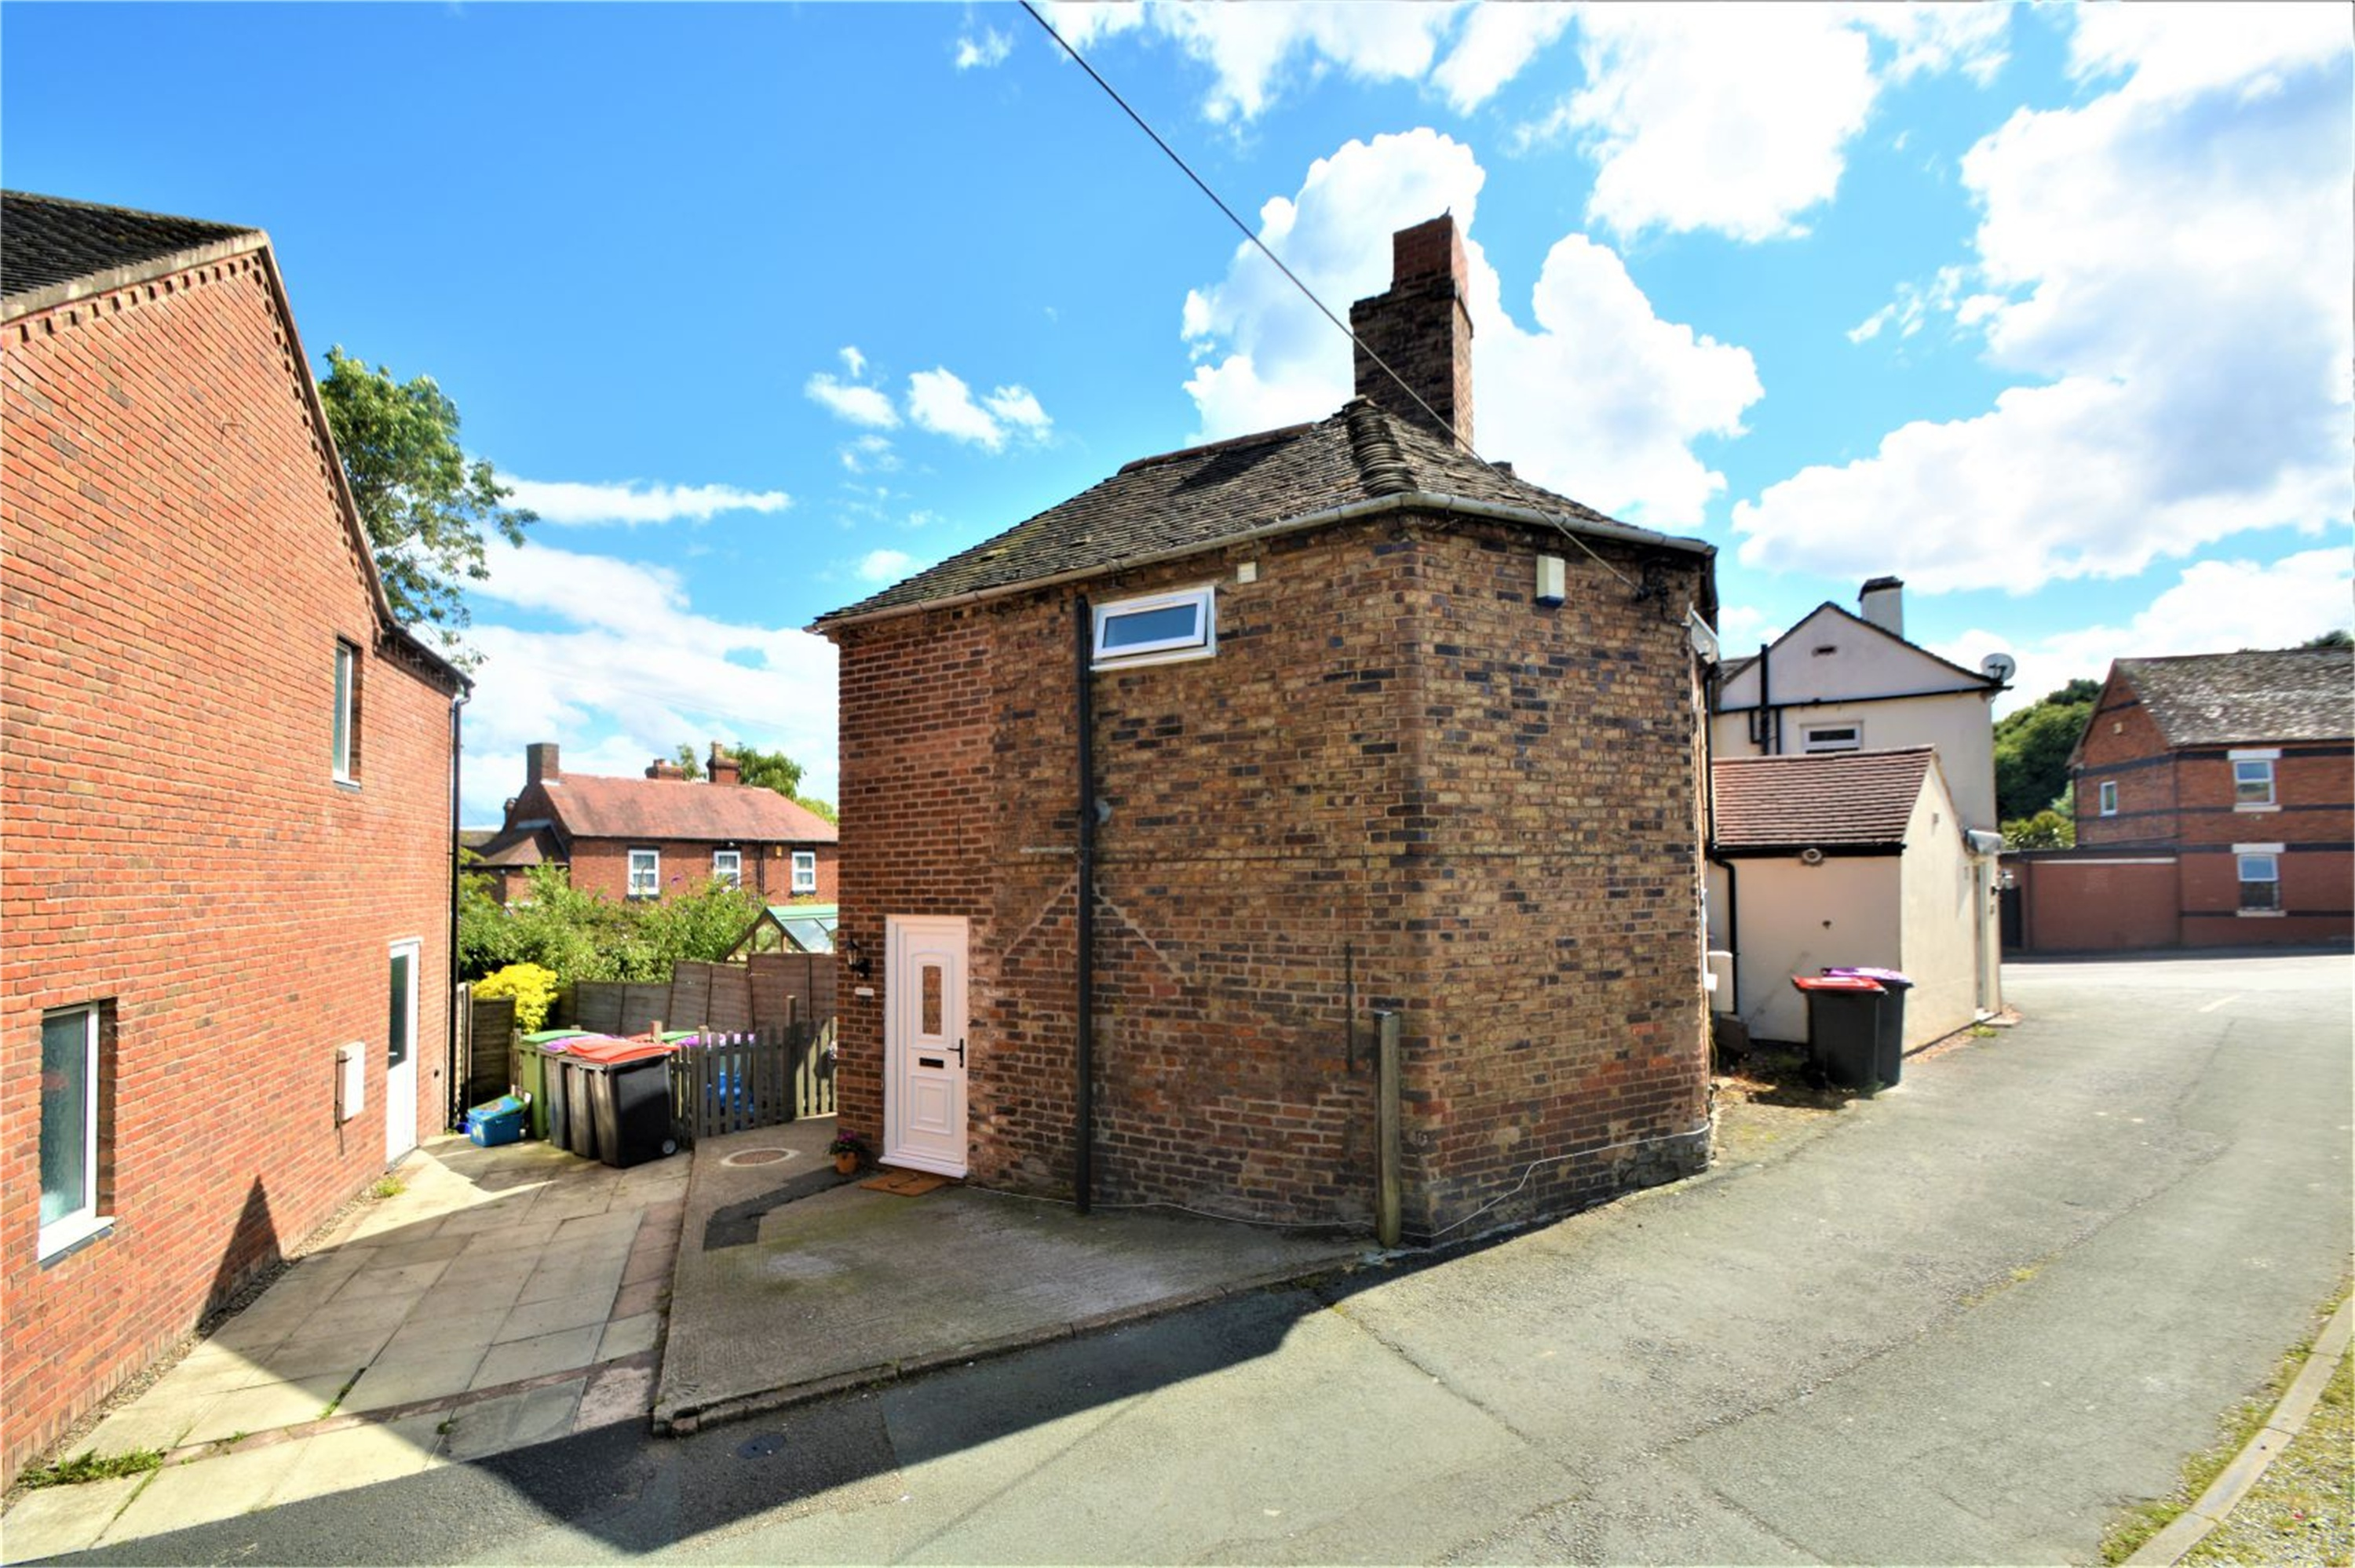 2 Bedrooms Terraced House for sale in 45 Bridle Road, Madeley, Telford, Shropshire, TF7